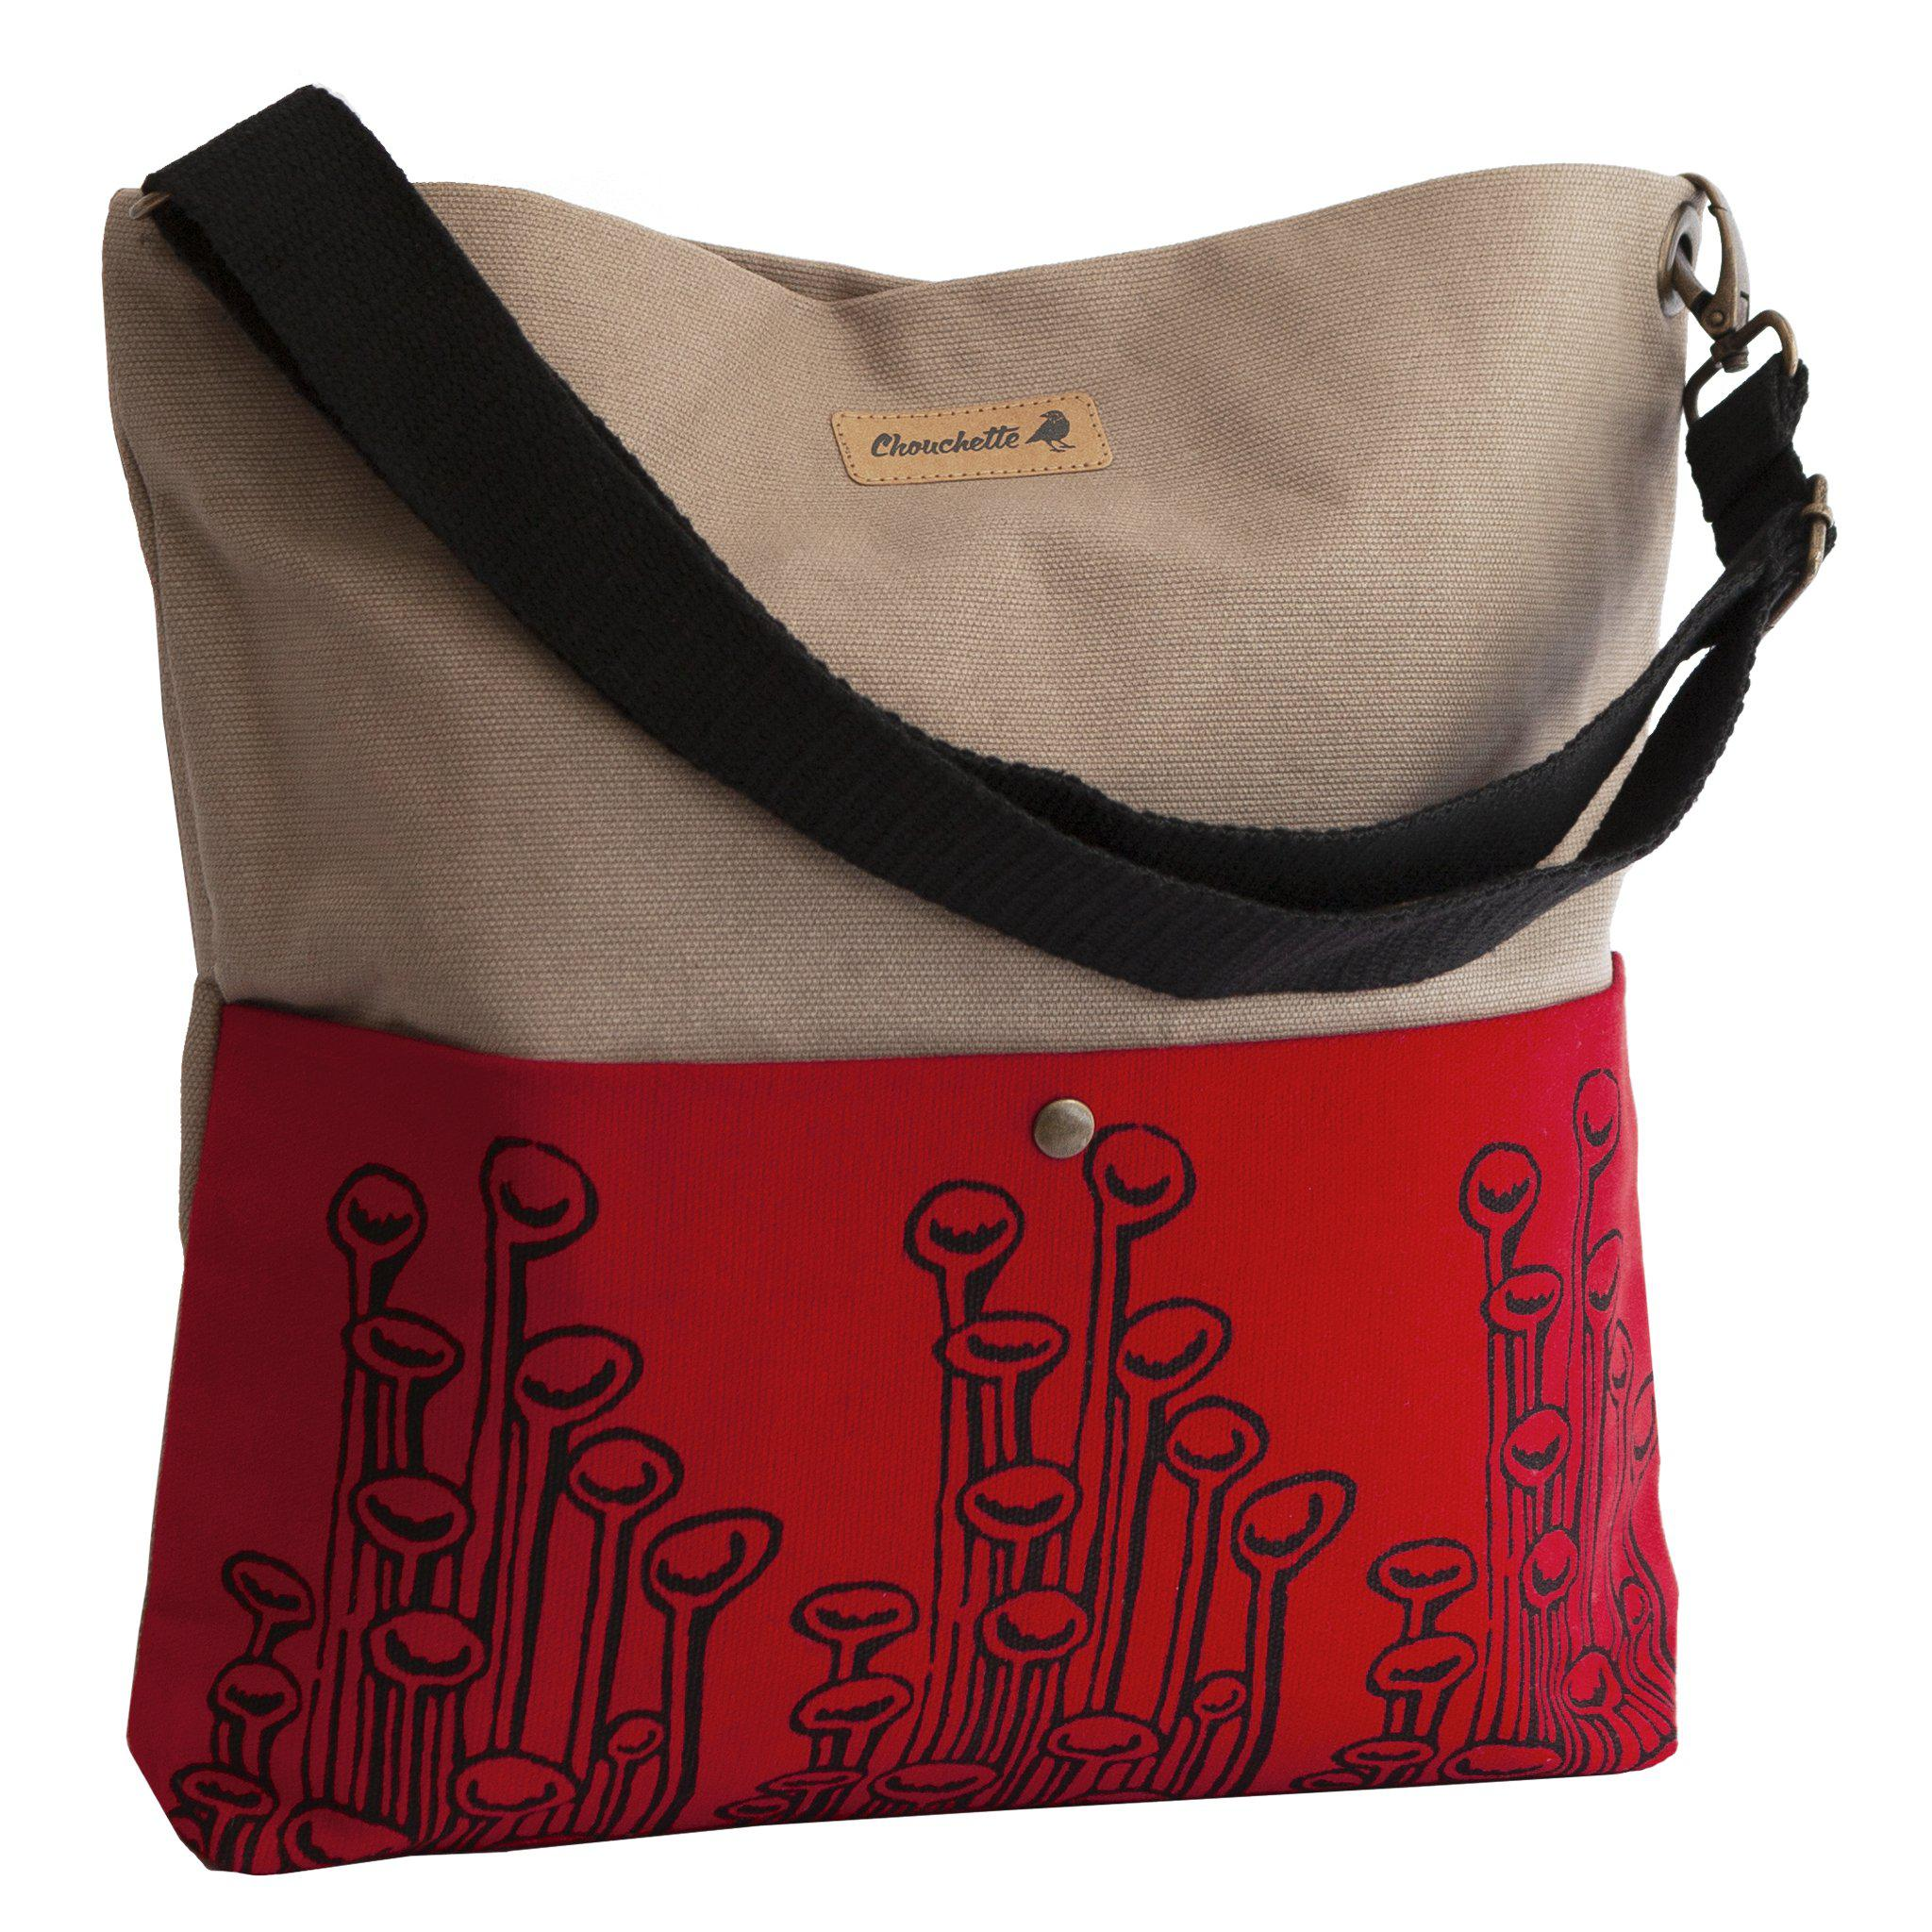 Beige and red 'Stuck to the floor' Shoulder bag that converts into a crossbody bag-Devrim Studio